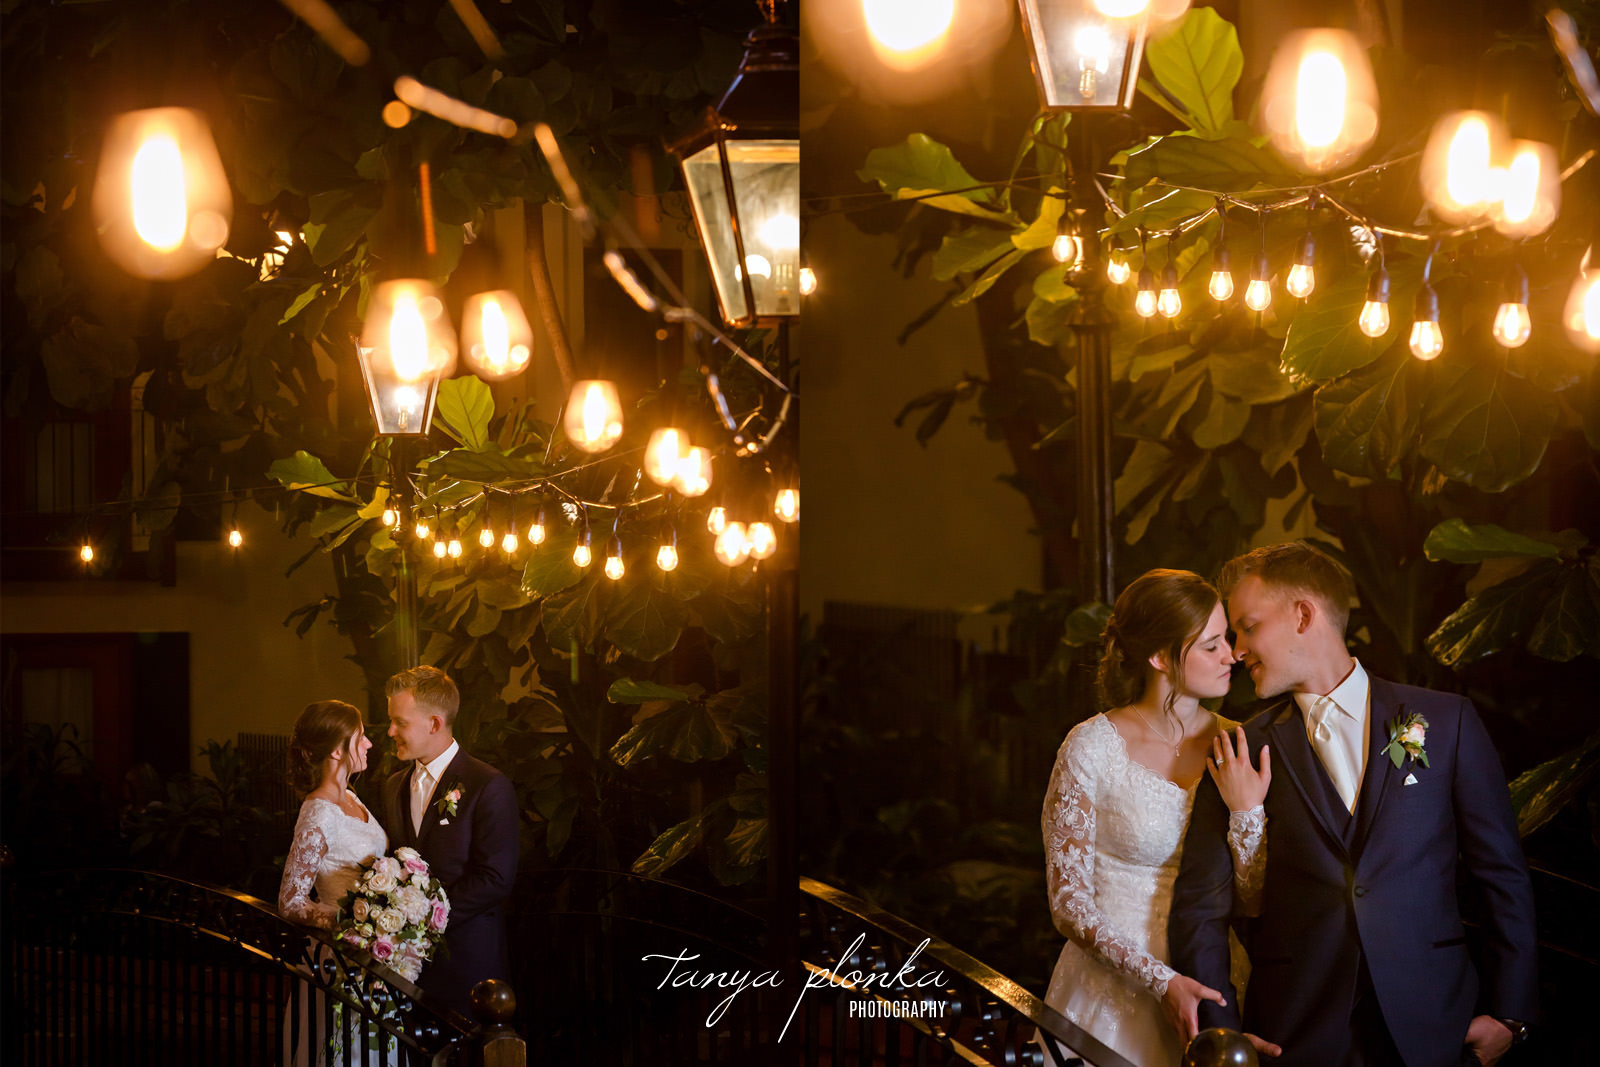 two photos of bride and groom in Sandman Signature Hotel lobby at night with lights in foreground